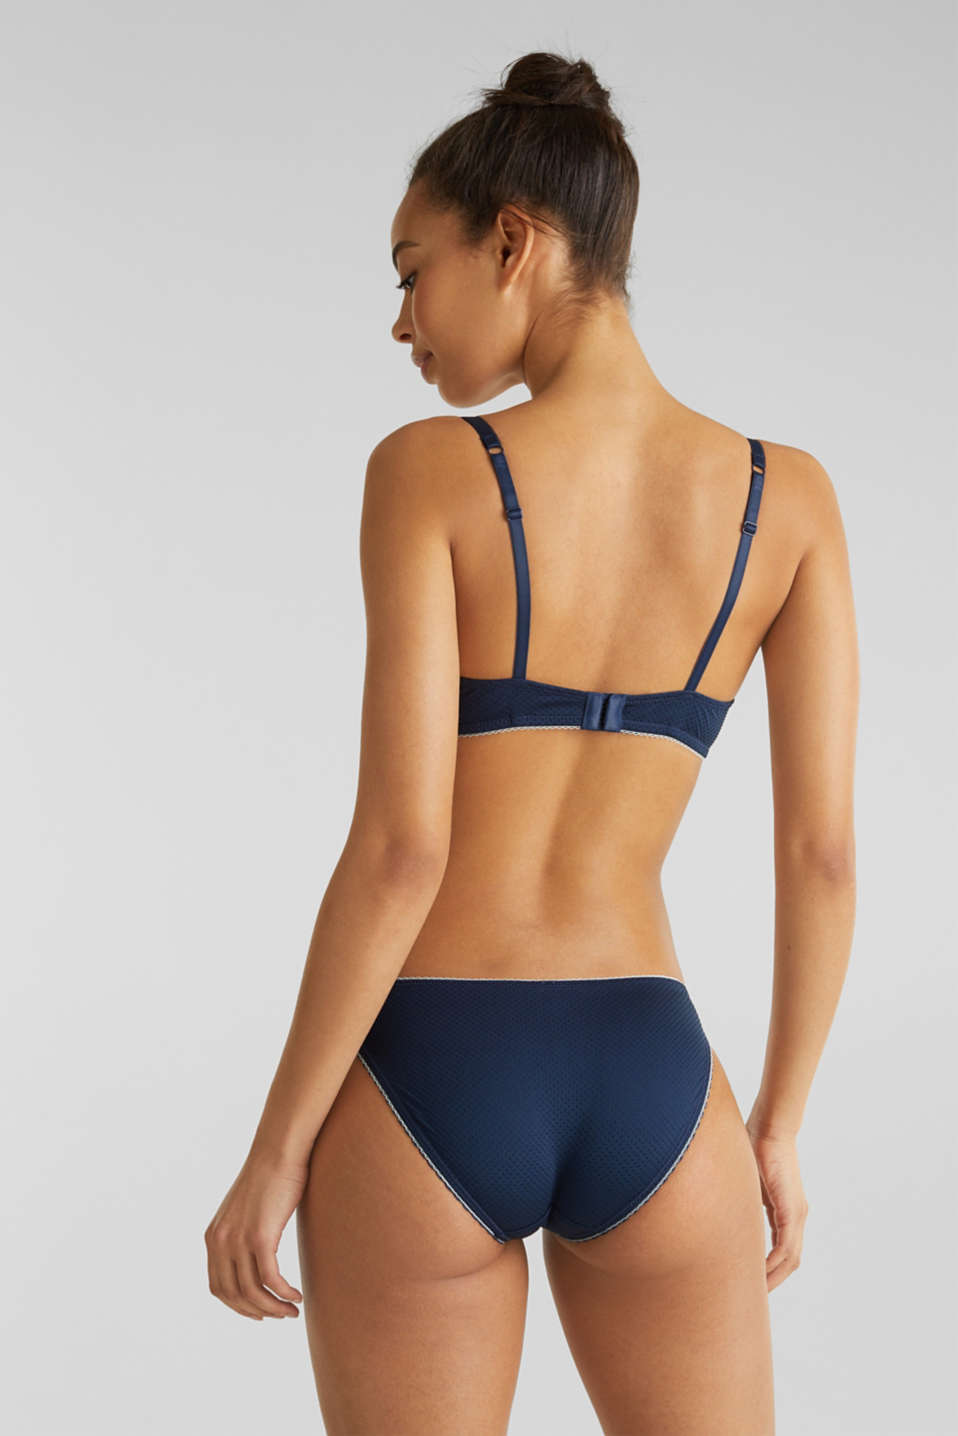 Padded underwire bra with a jacquard pattern, NAVY 2, detail image number 1